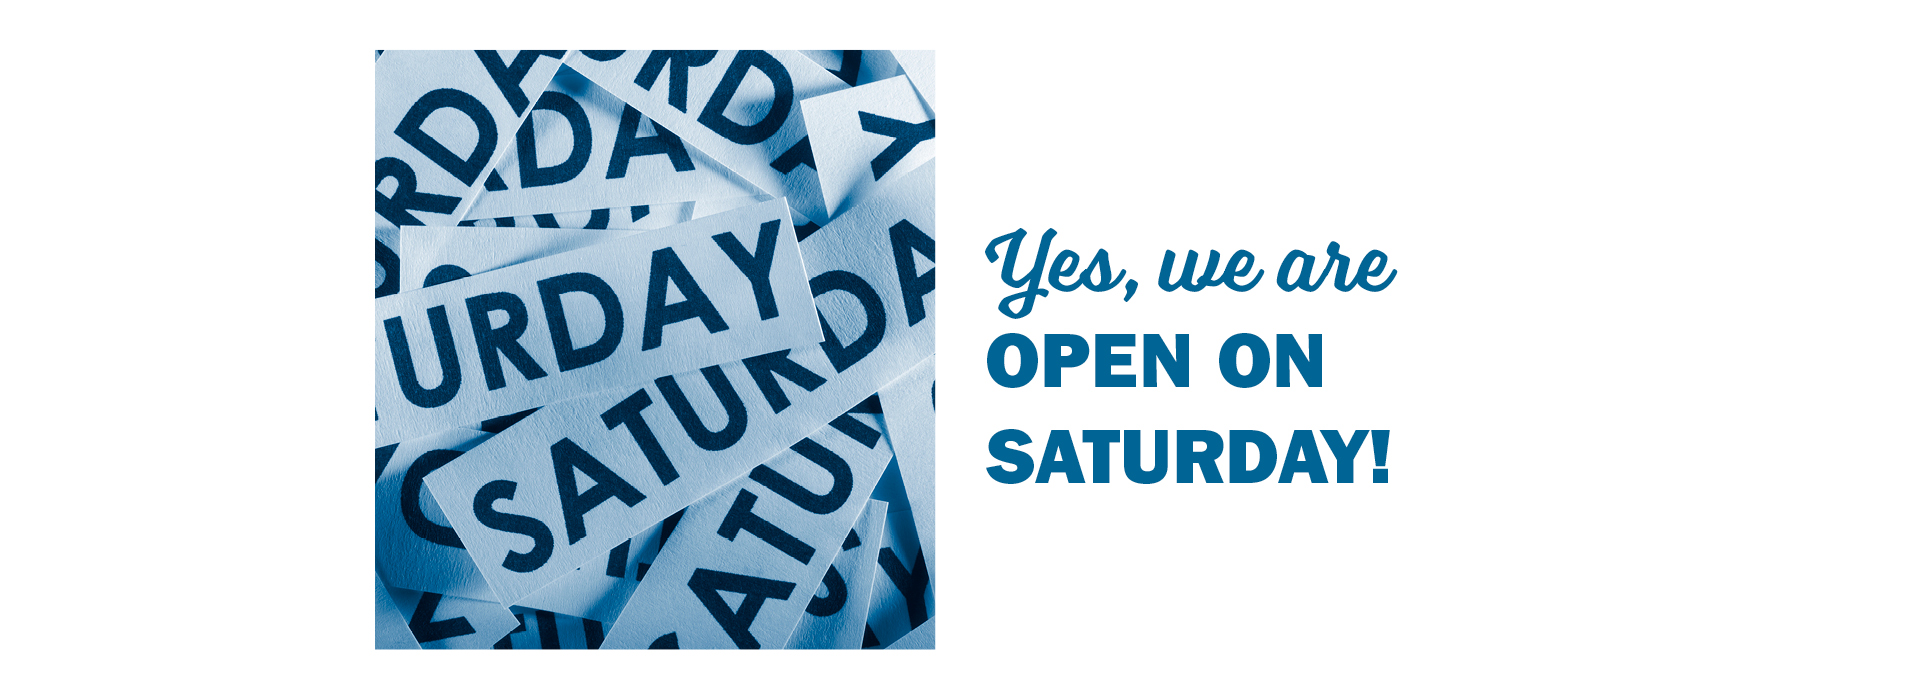 Yes, we are open on Saturday!